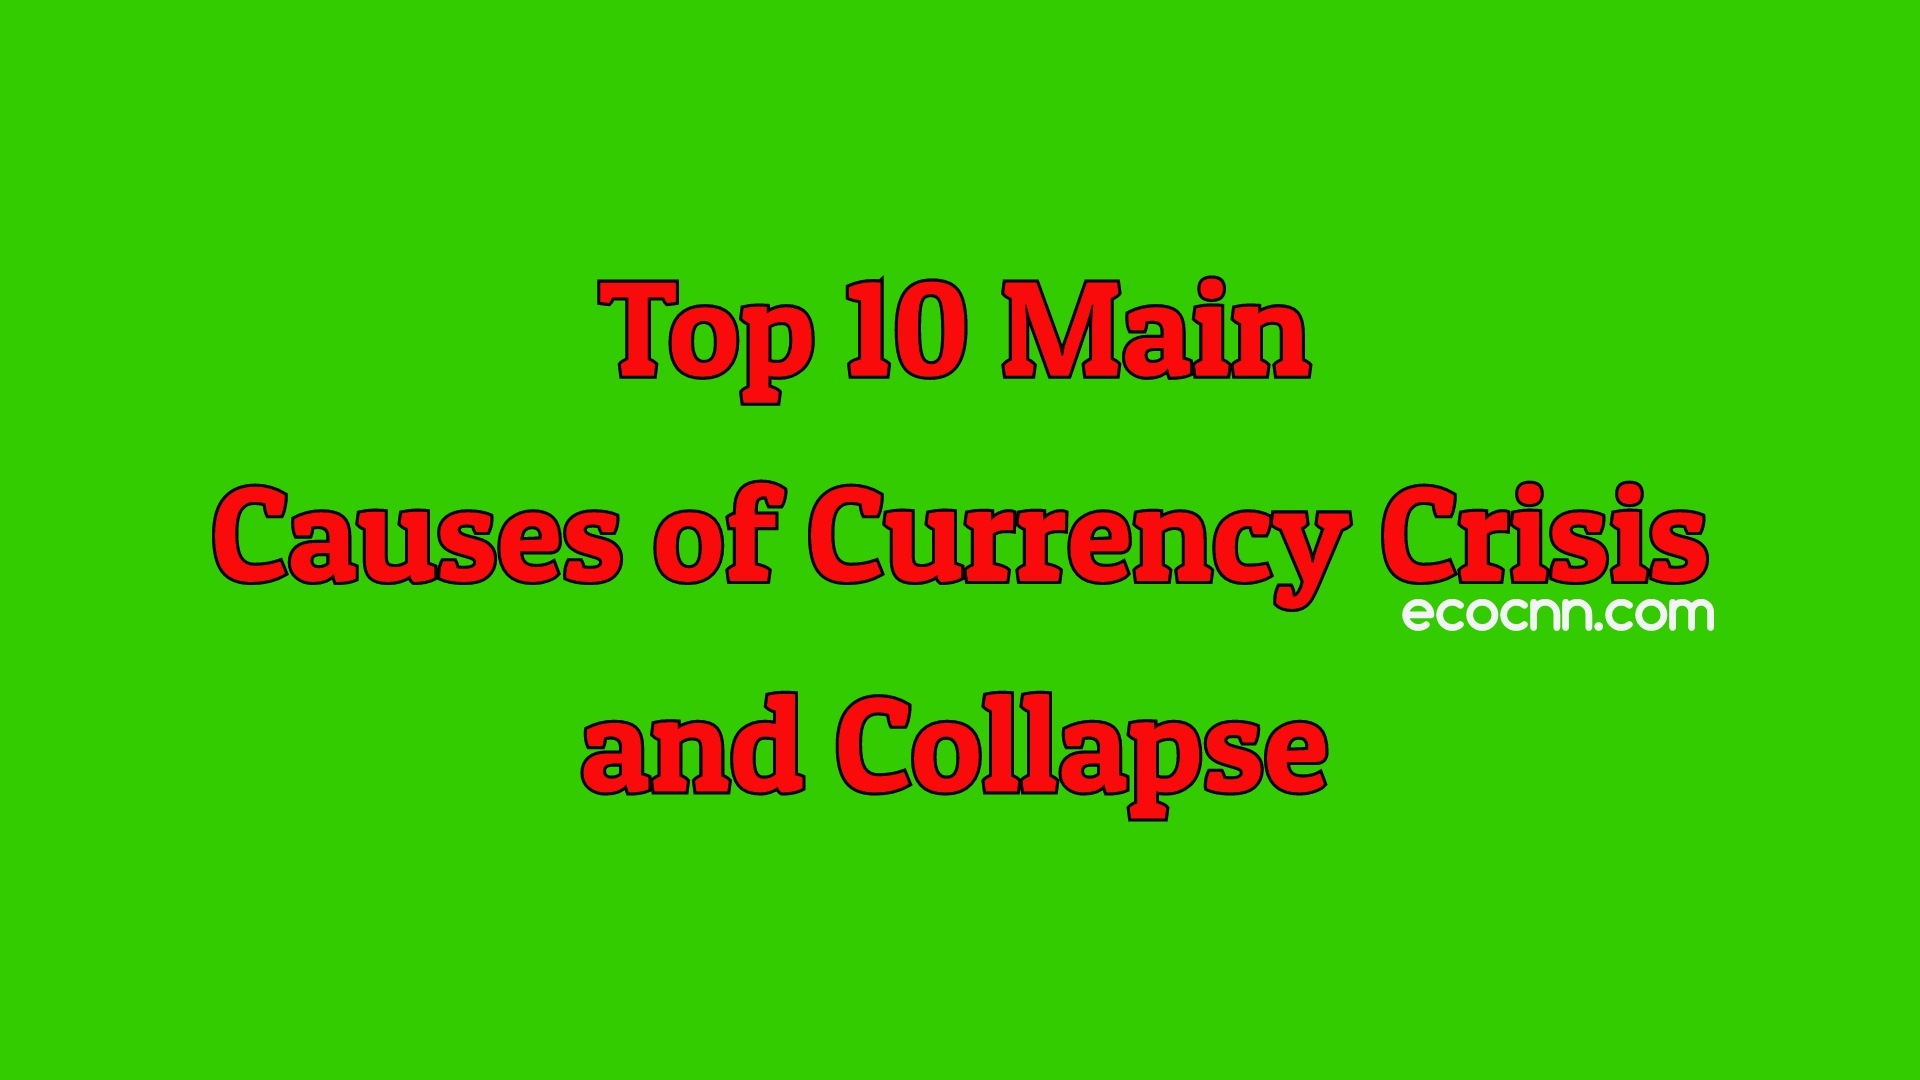 Causes of Currency Crisis and Collapse in The World